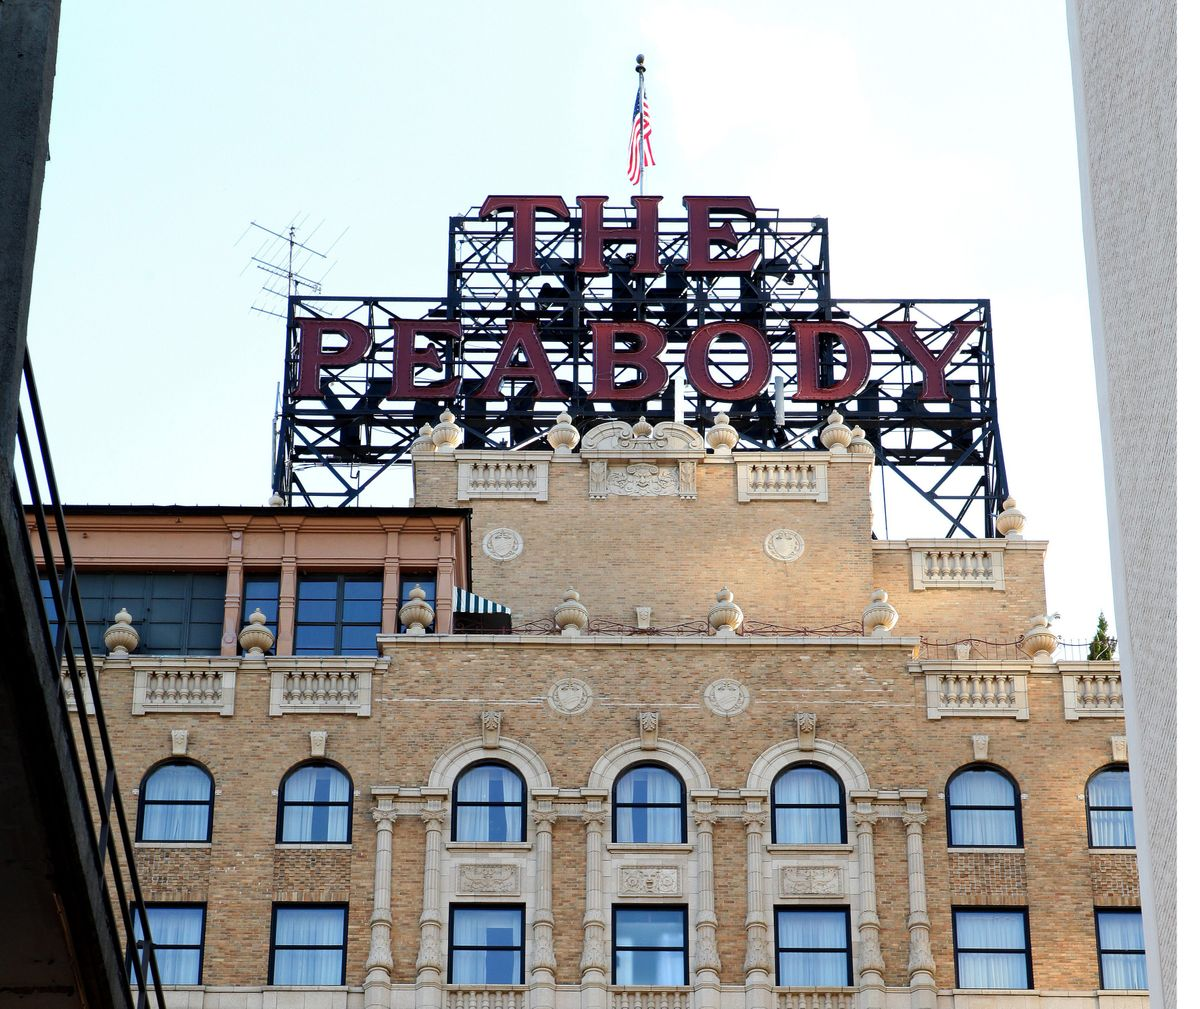 MEMPHIS - OCTOBER 03:  The Peabody Hotel in Memphis, Tennessee on October 3, 2016.  (Photo By Raymond Boyd/Getty Images)